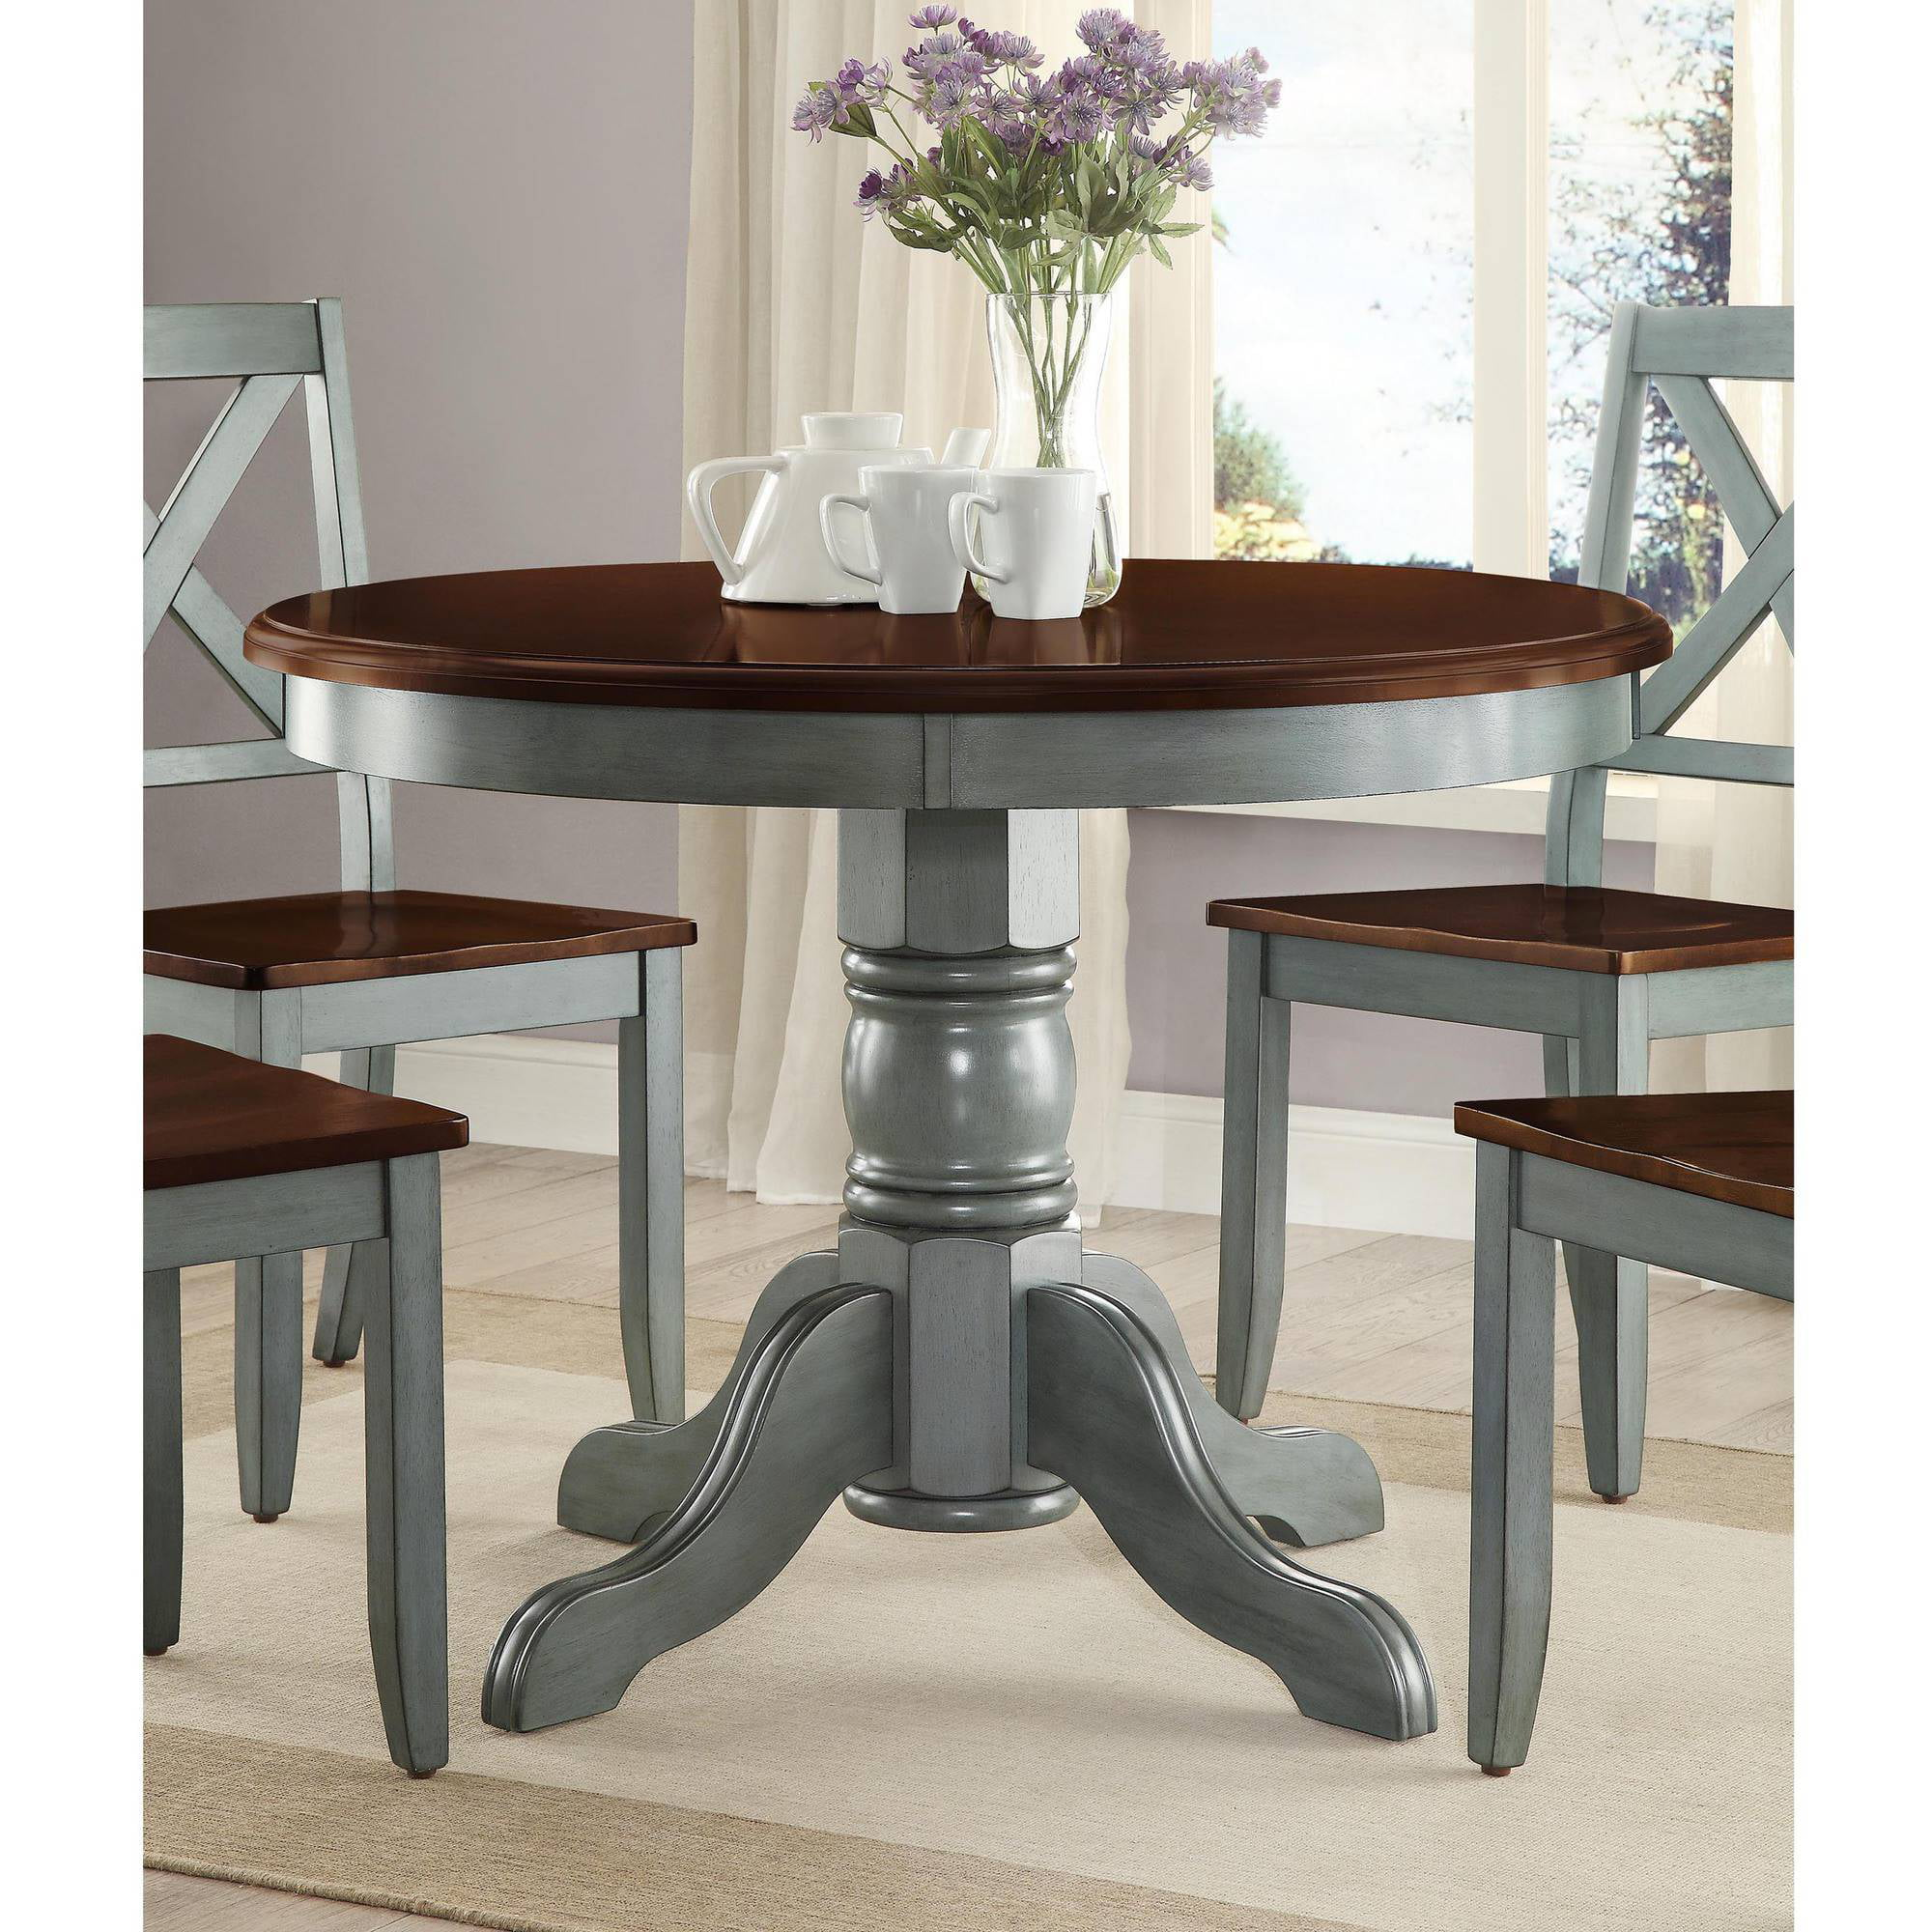 mainstays 5 piece glass and metal dining set 42 round tabletop walmart com - Walmart Kitchen Tables